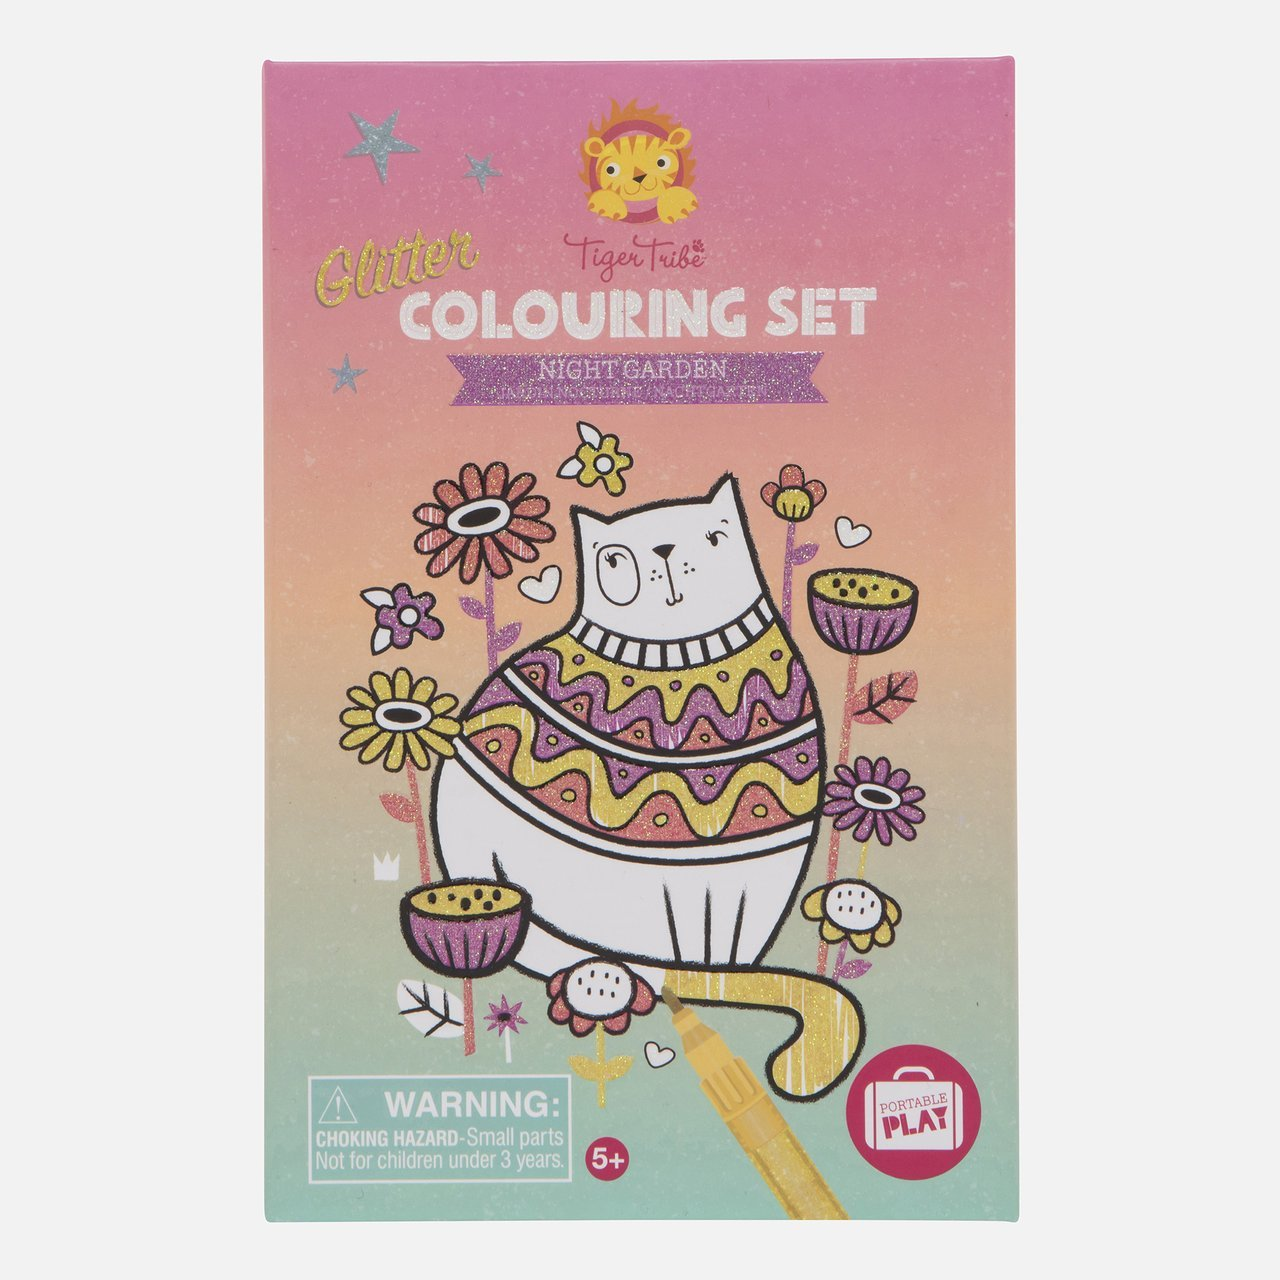 Tiger Tribe Glitter Colouring Set Tiger Tribe Activity Toys Night Garden at Little Earth Nest Eco Shop